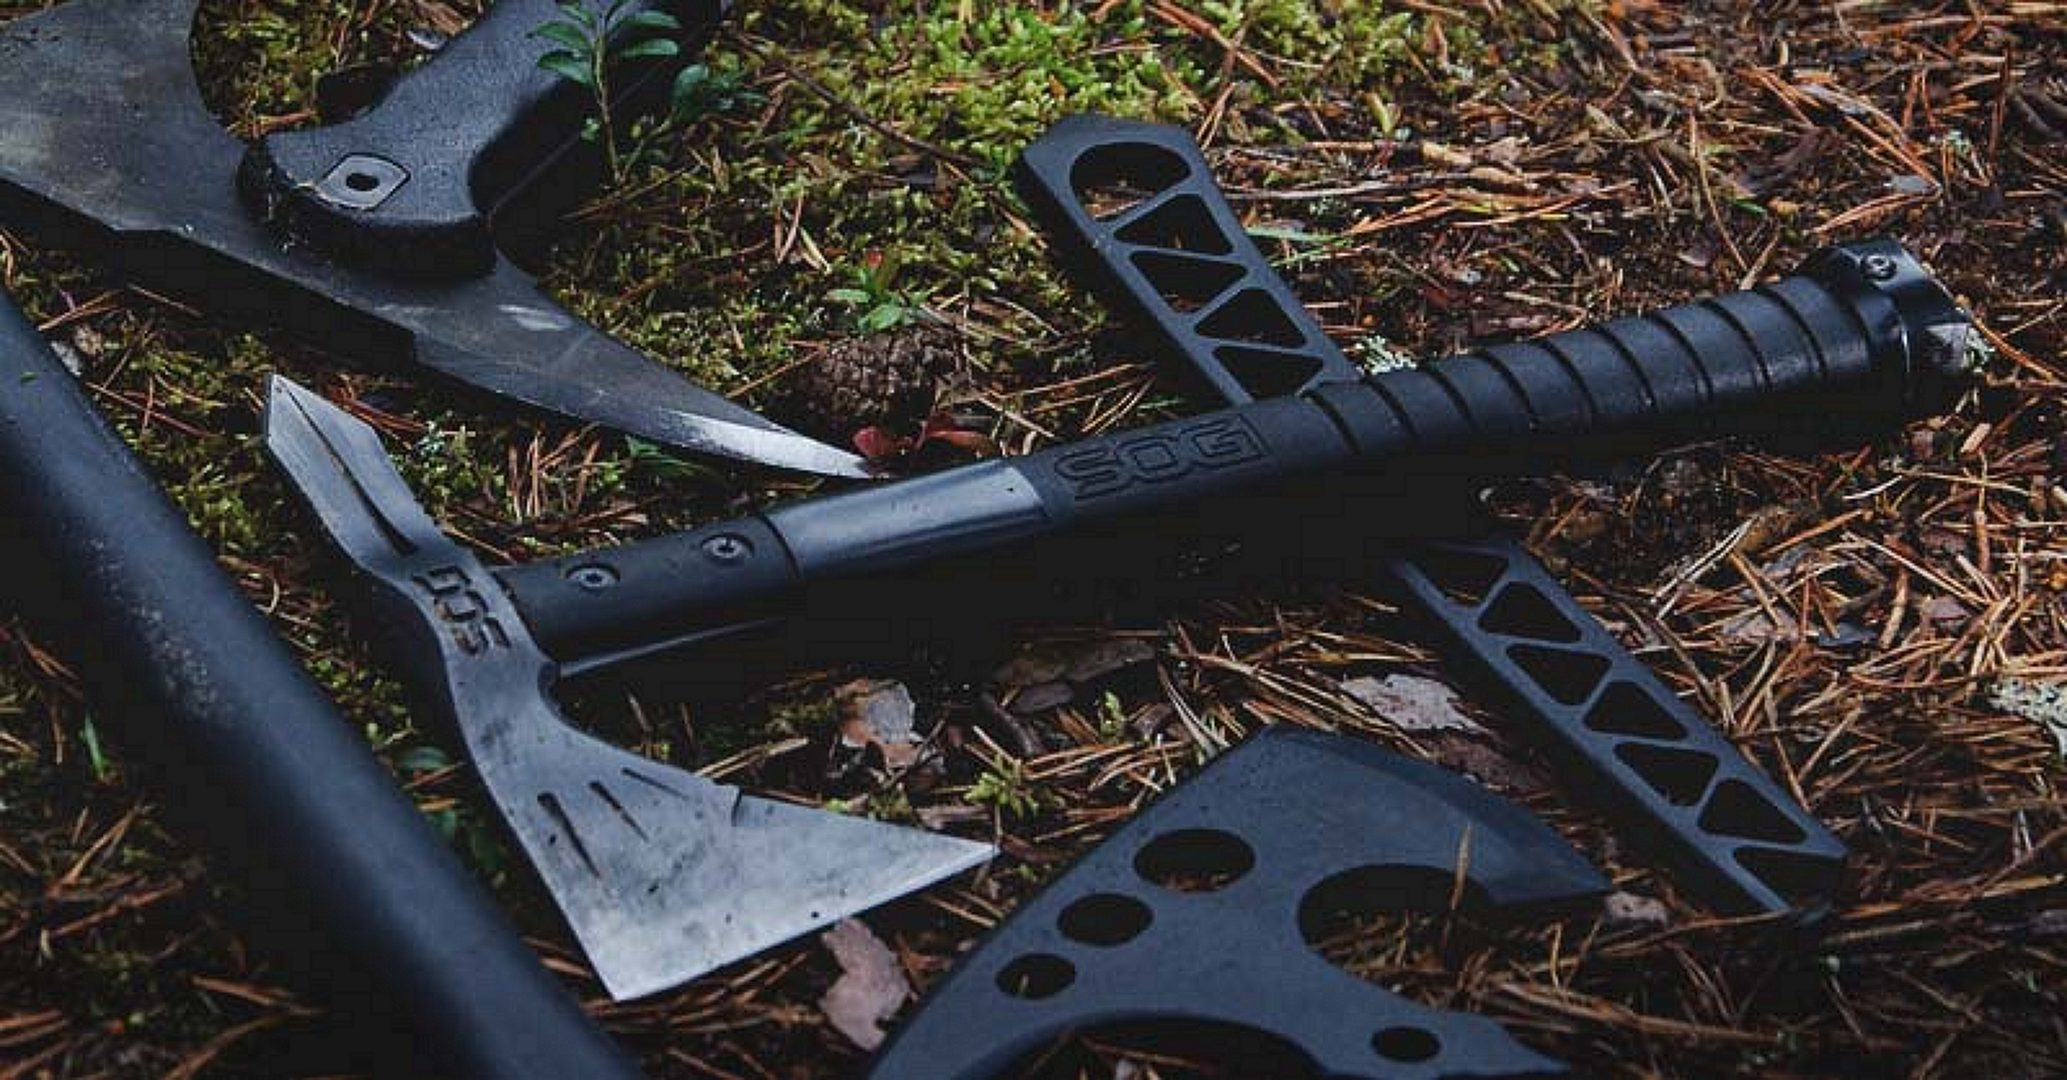 SOG Tomahawk on the grass